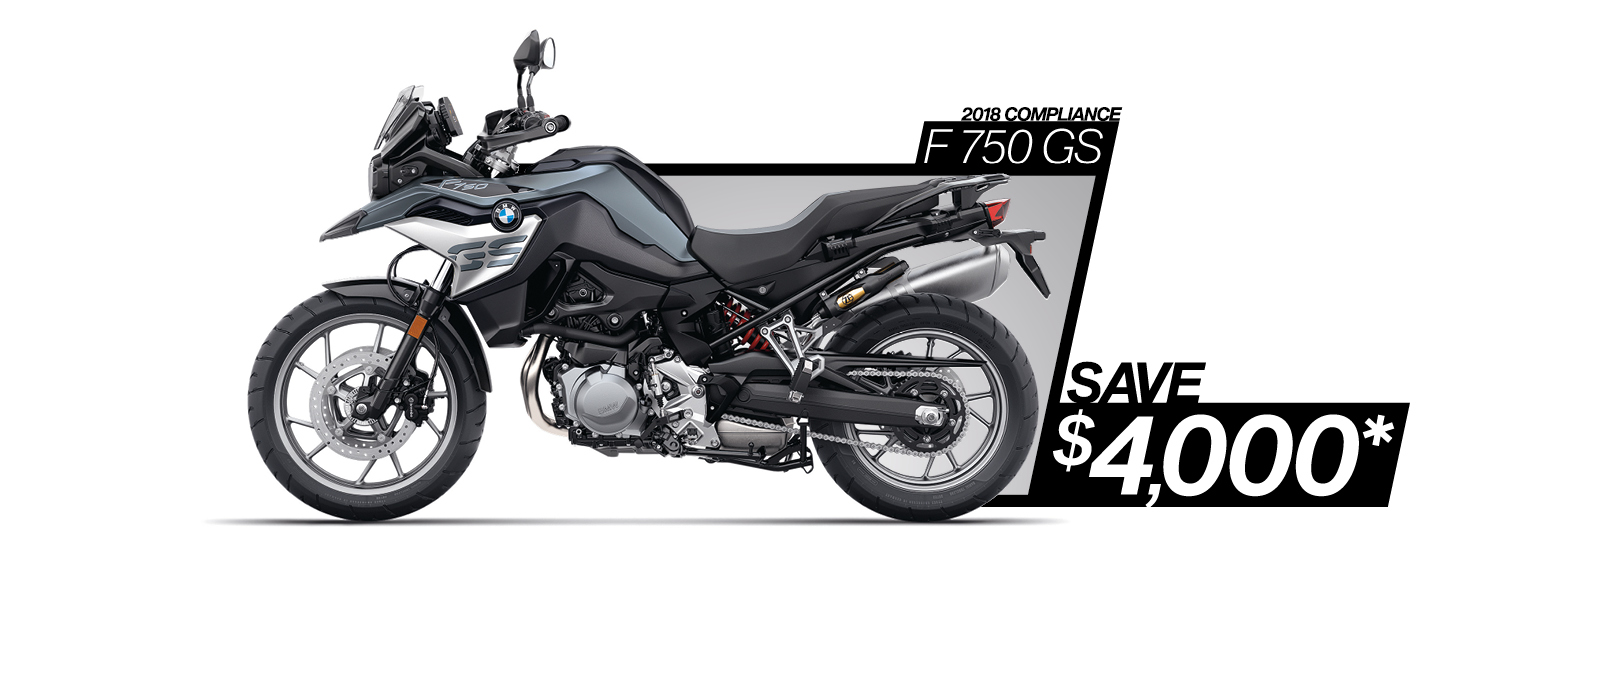 F 750 GS on sale